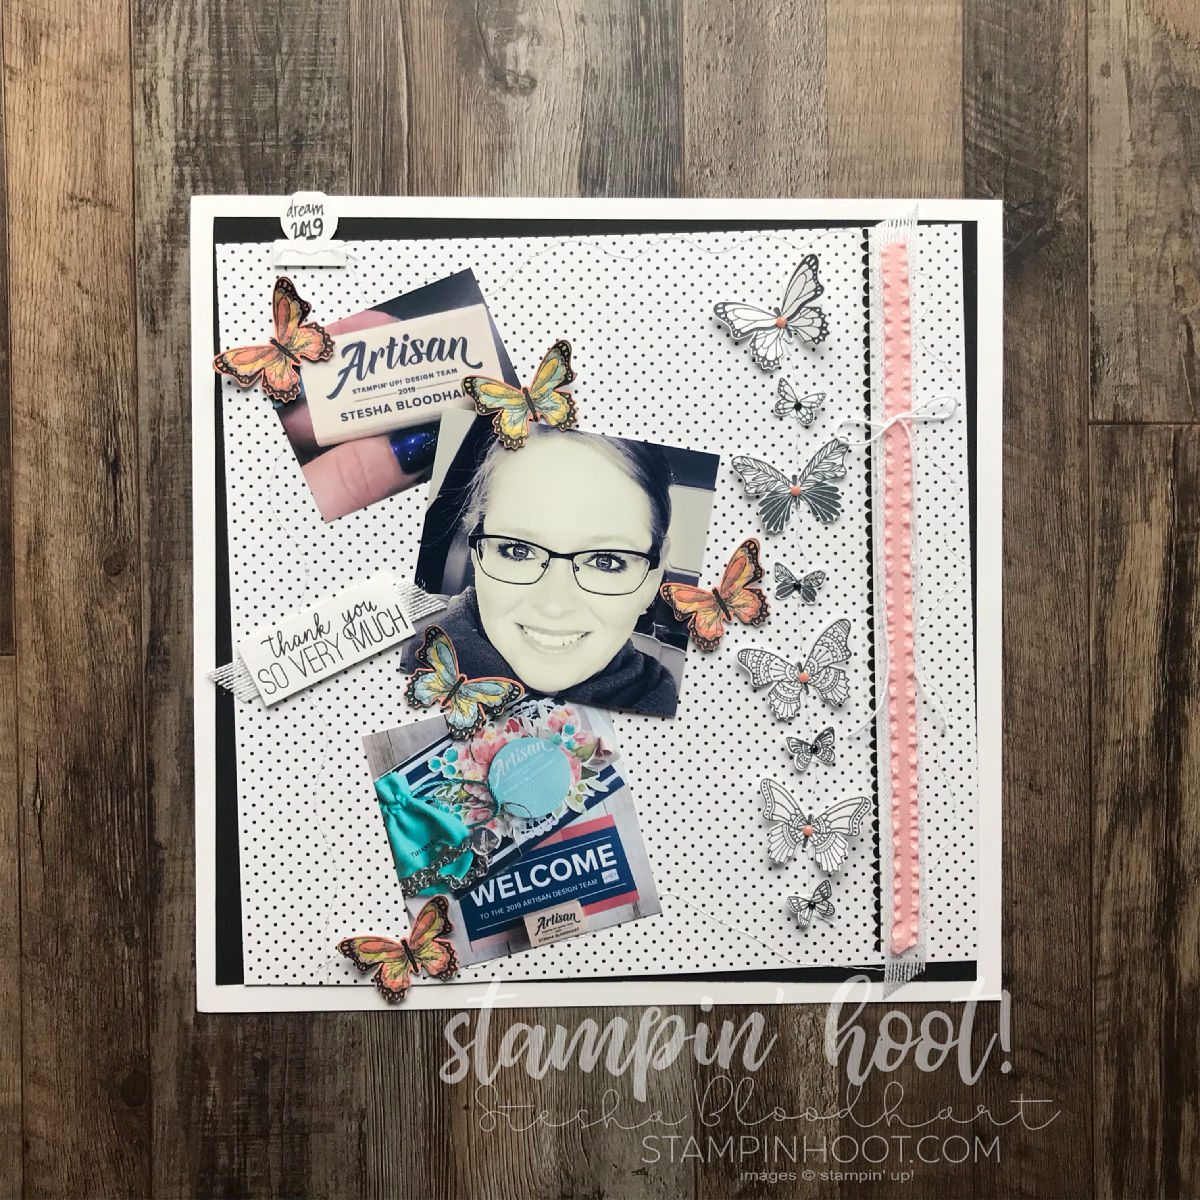 Scrapbooking Global December 2018 Challenge Stitching and Sewing